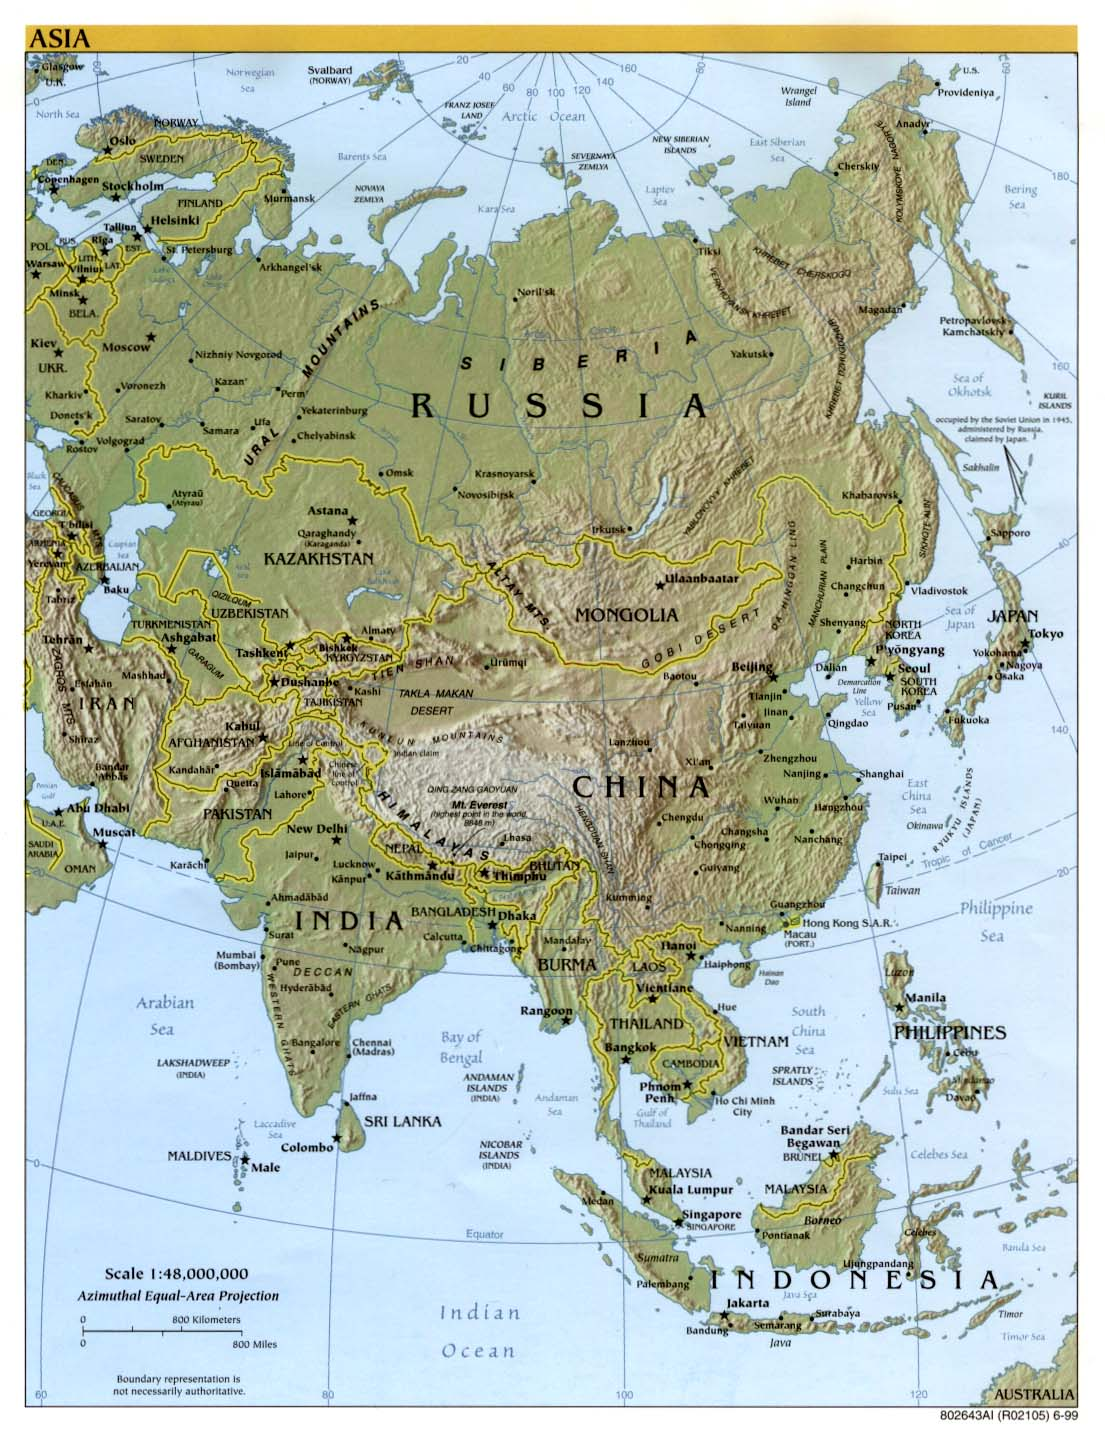 Free Download Asia Maps – Full Map of Asia